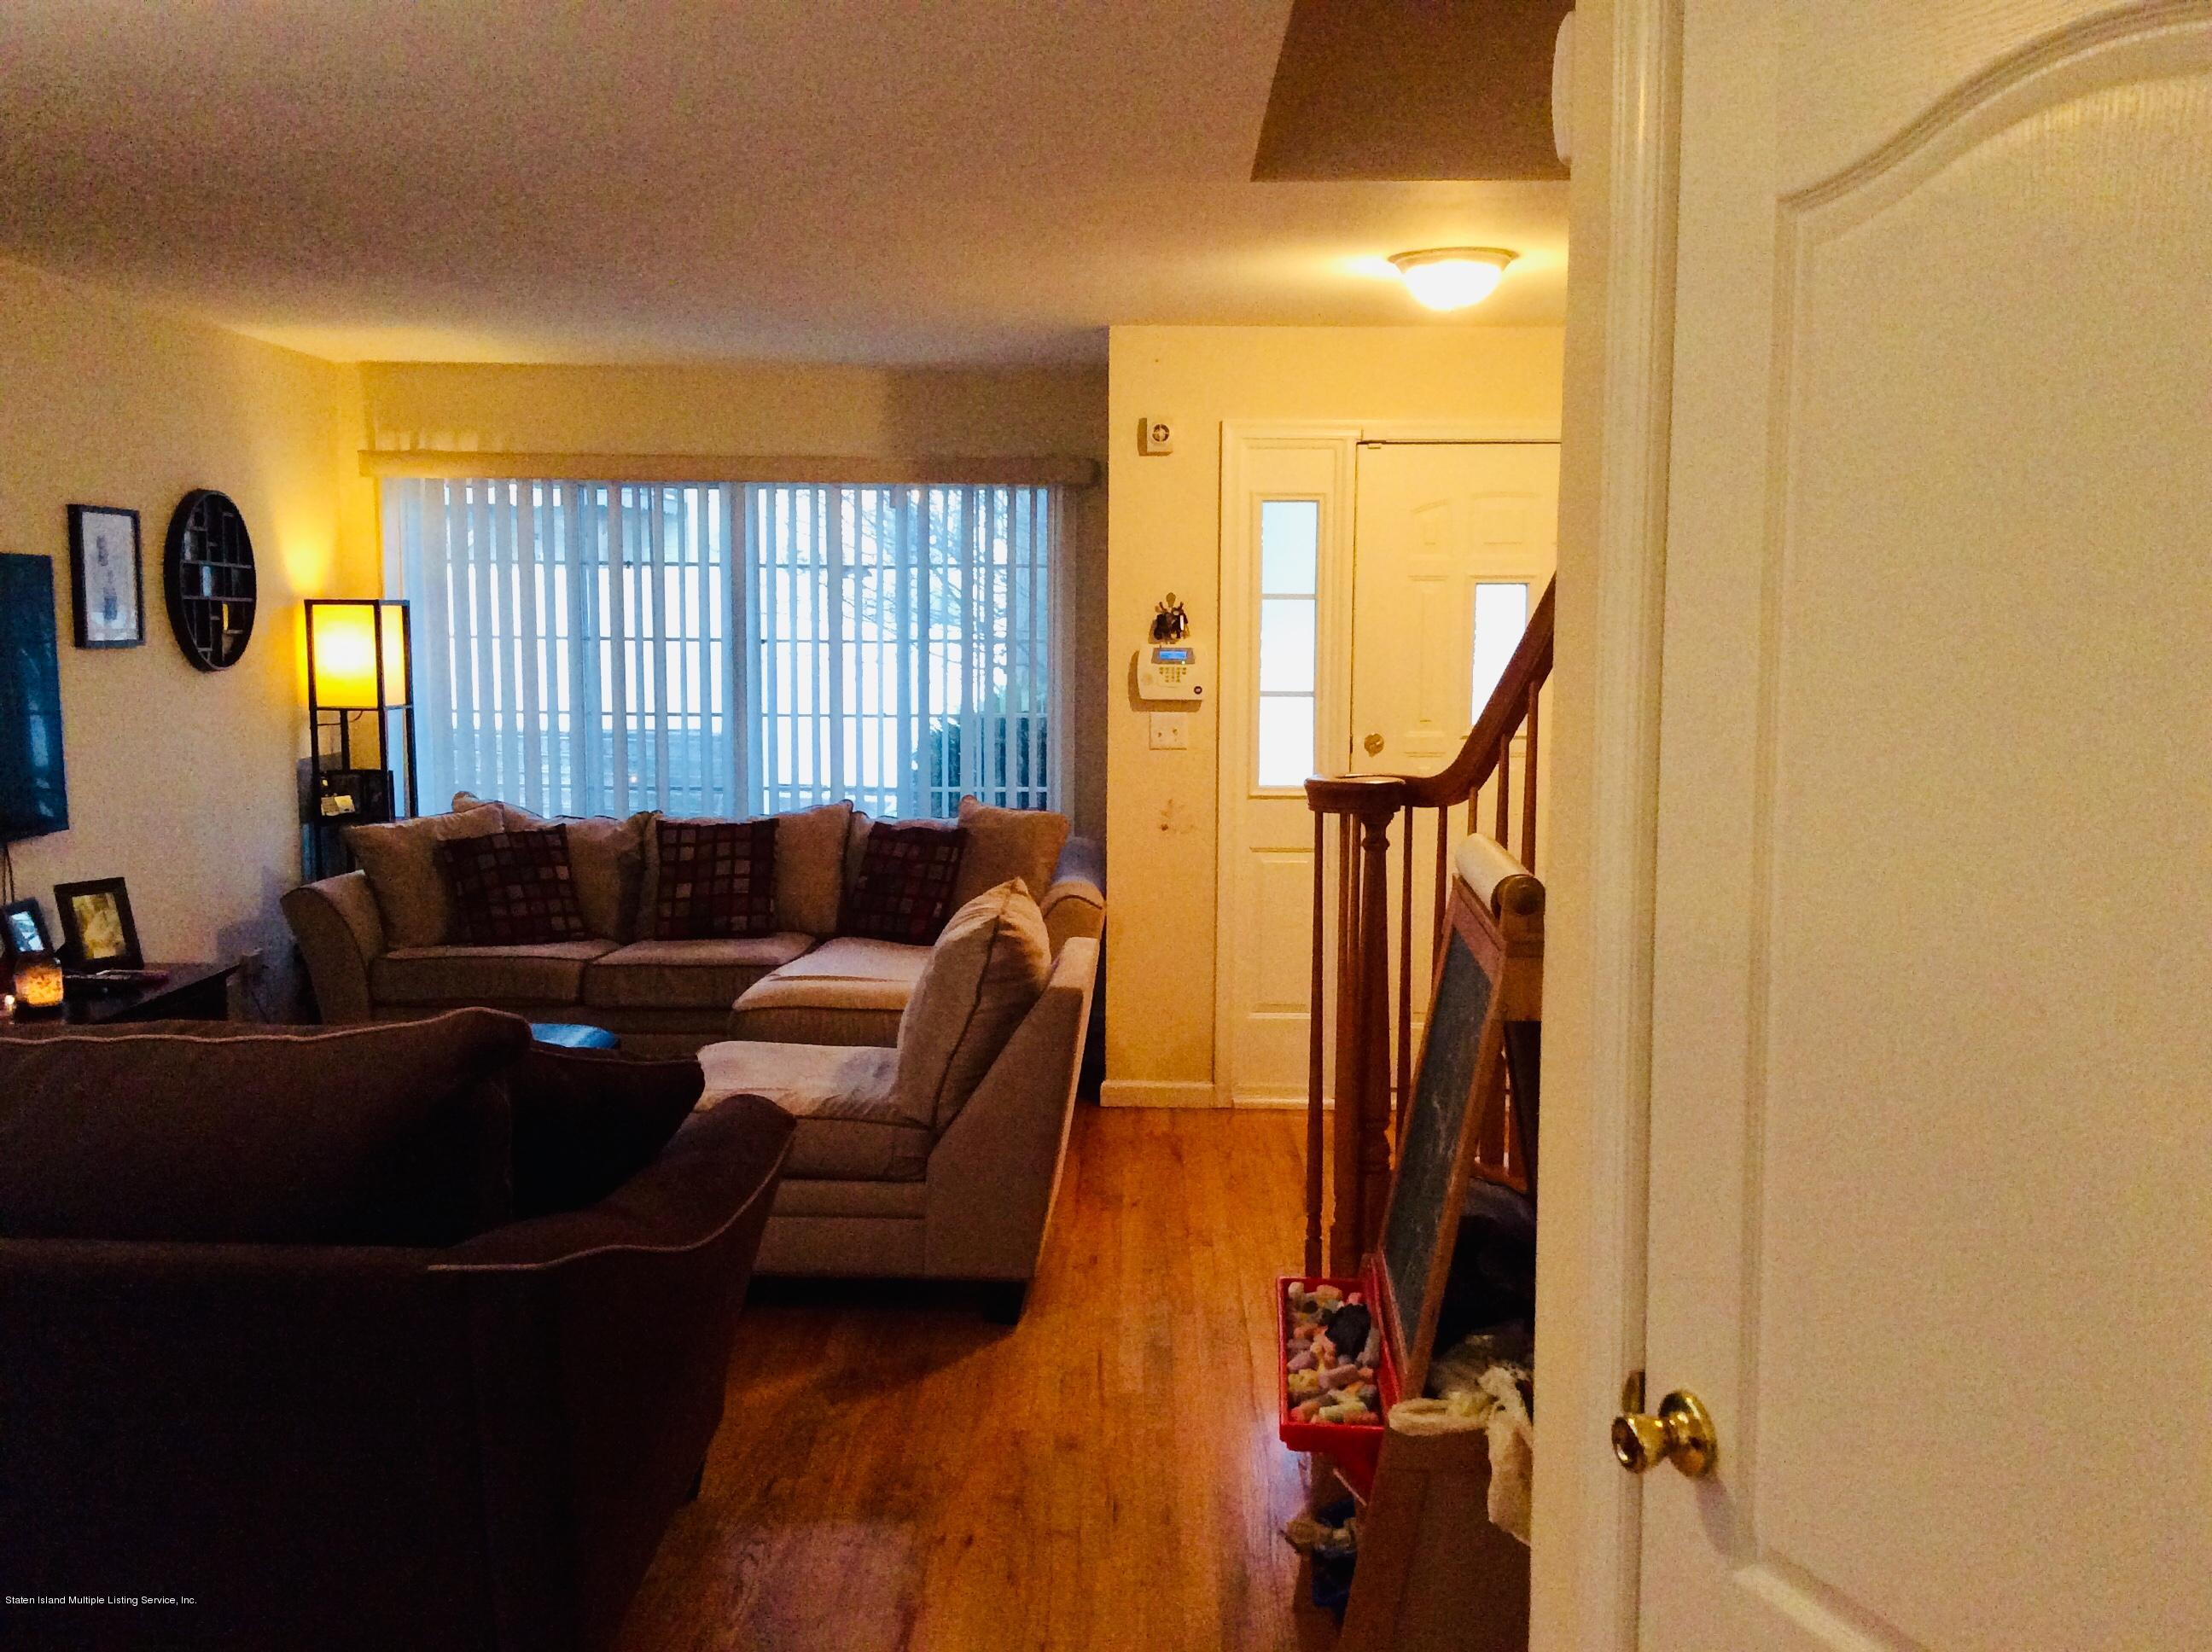 Single Family - Semi-Attached 94 Ambassador Lane  Staten Island, NY 10309, MLS-1125440-5